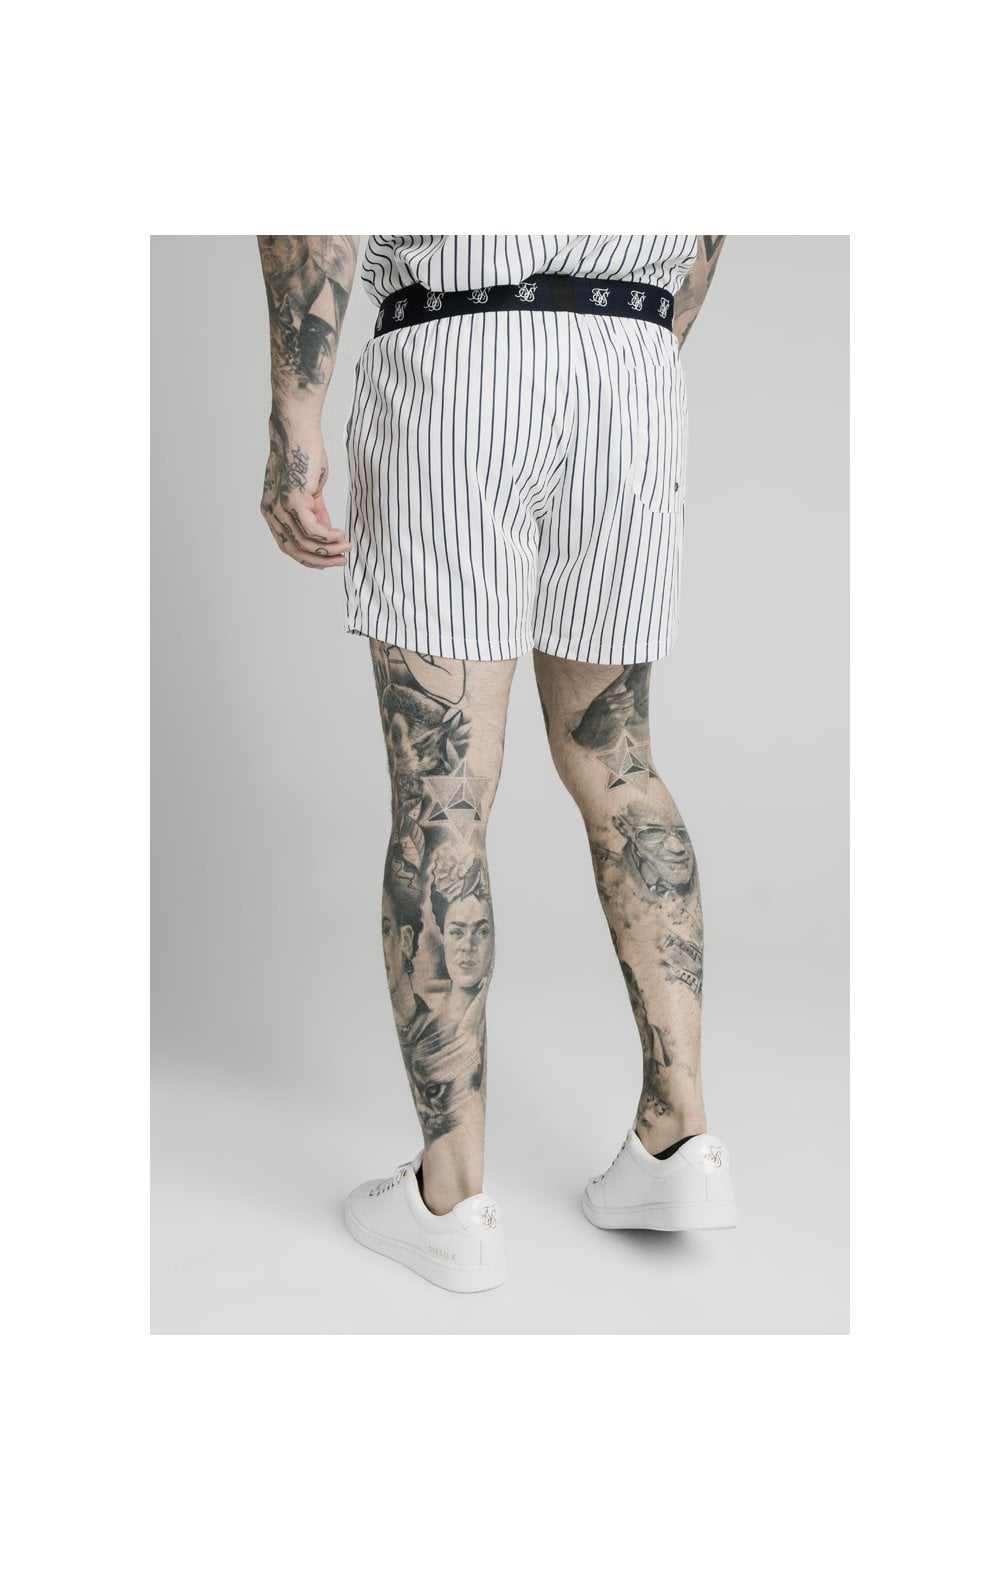 SikSilk Eyelet Elasticated Swim Shorts - White & Navy (1)